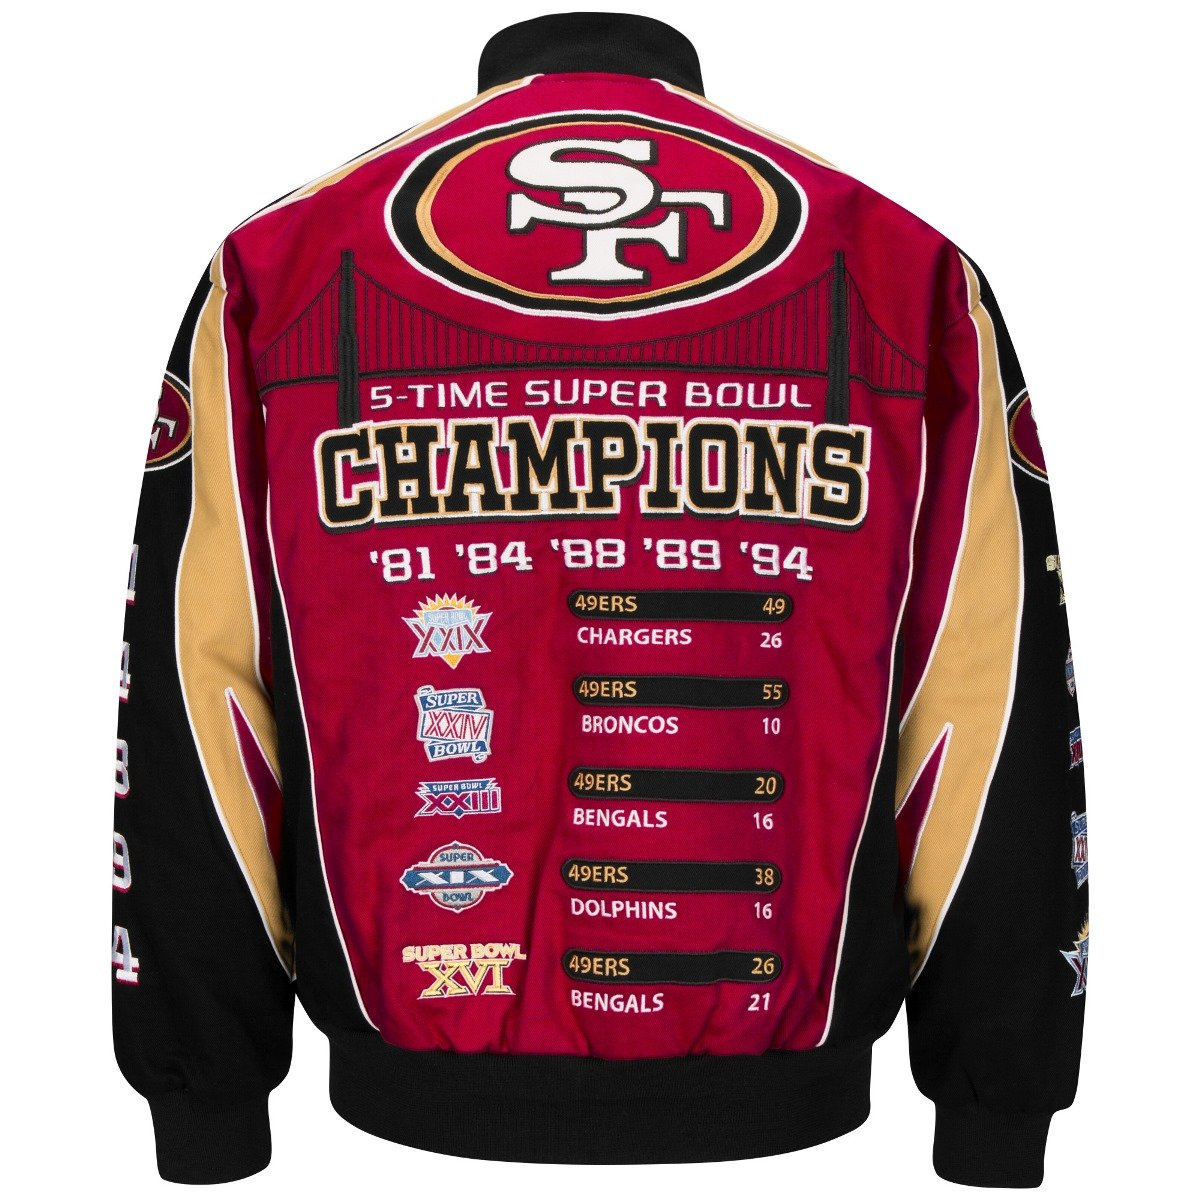 159ae9005 Amazon.com : San Francisco 49ers 5-time Super Bowl Champion Twill Jacket  (red/black/tan, Large) : Sports & Outdoors